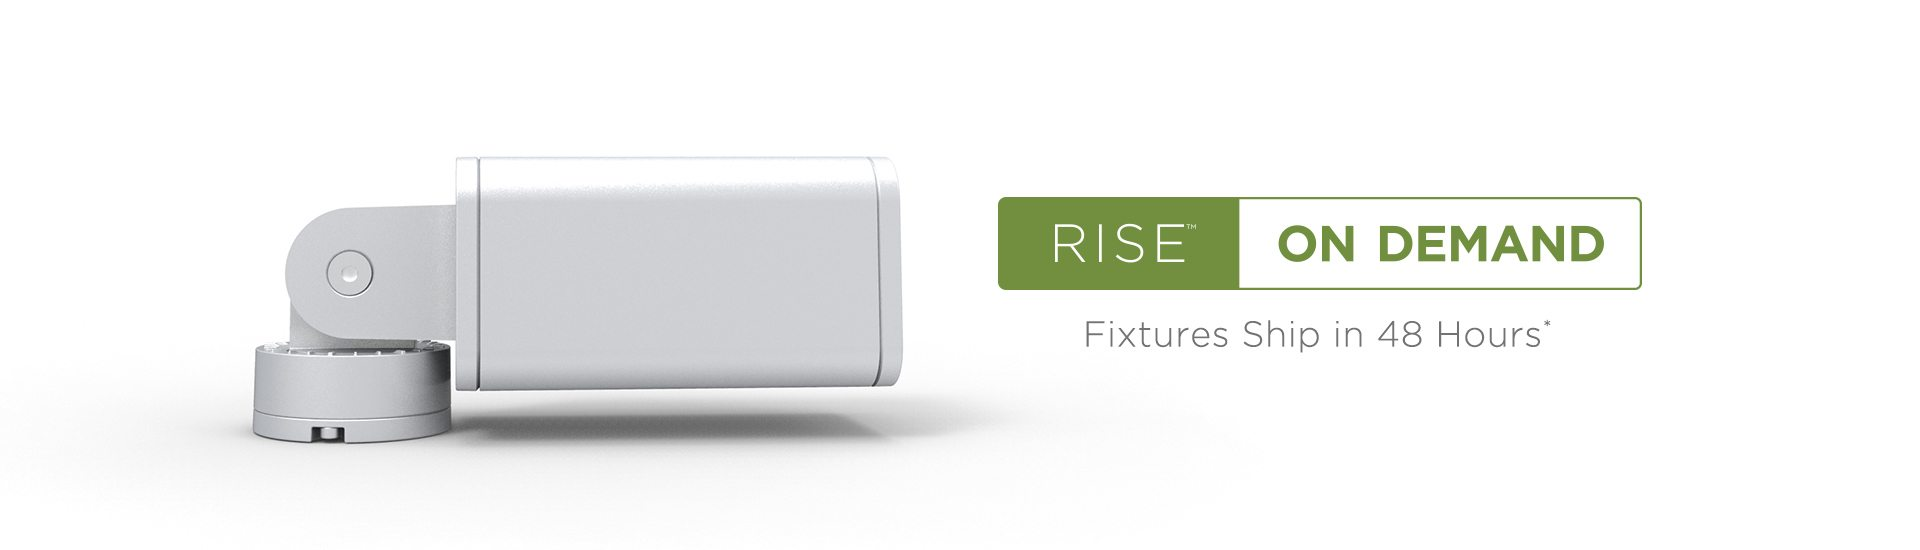 RISE ON DEMAND Fixtures Ship in 48 Hours